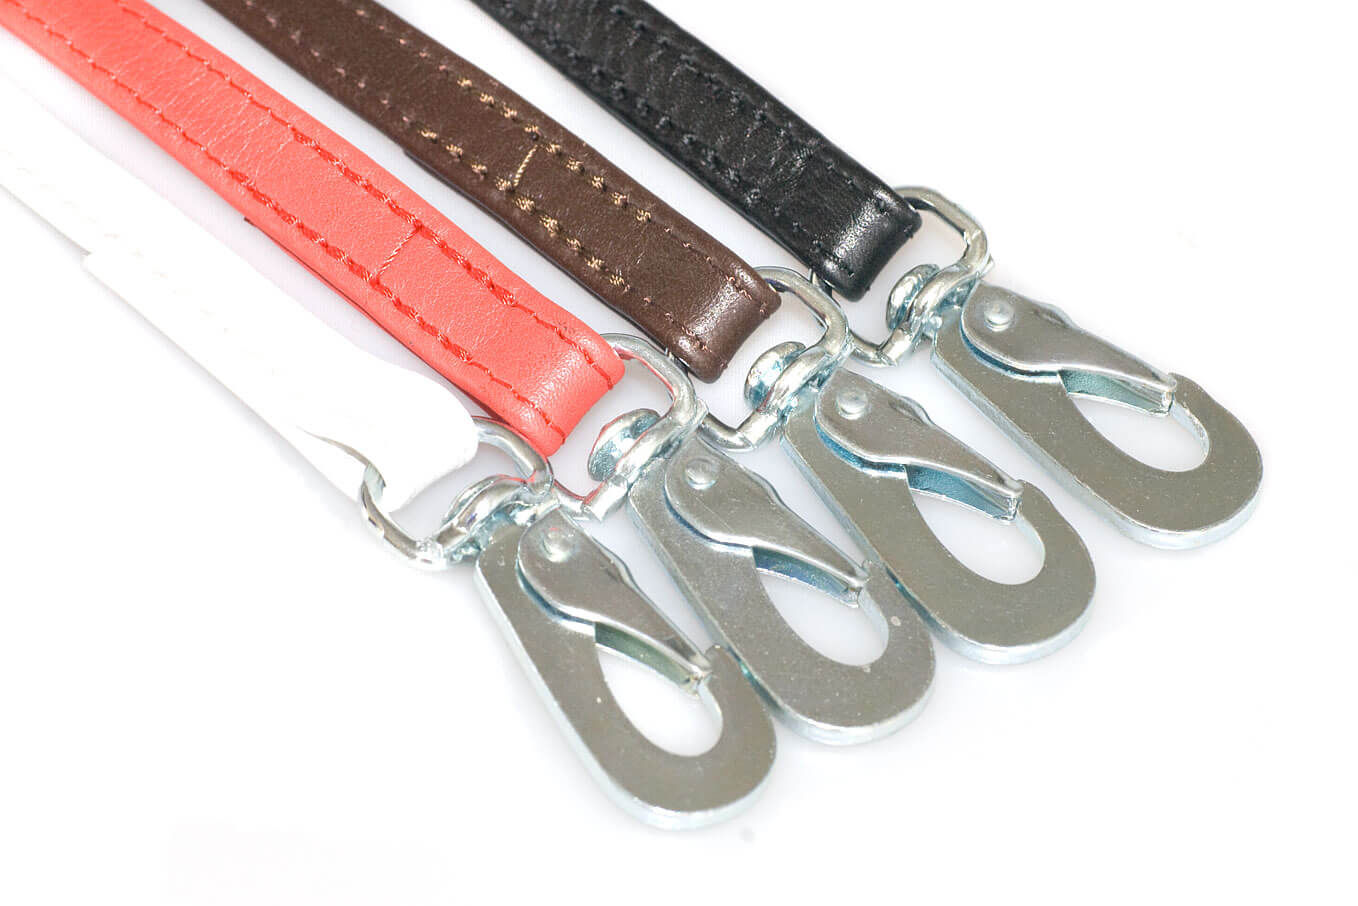 Soft dog show leads in red, white, black and brown